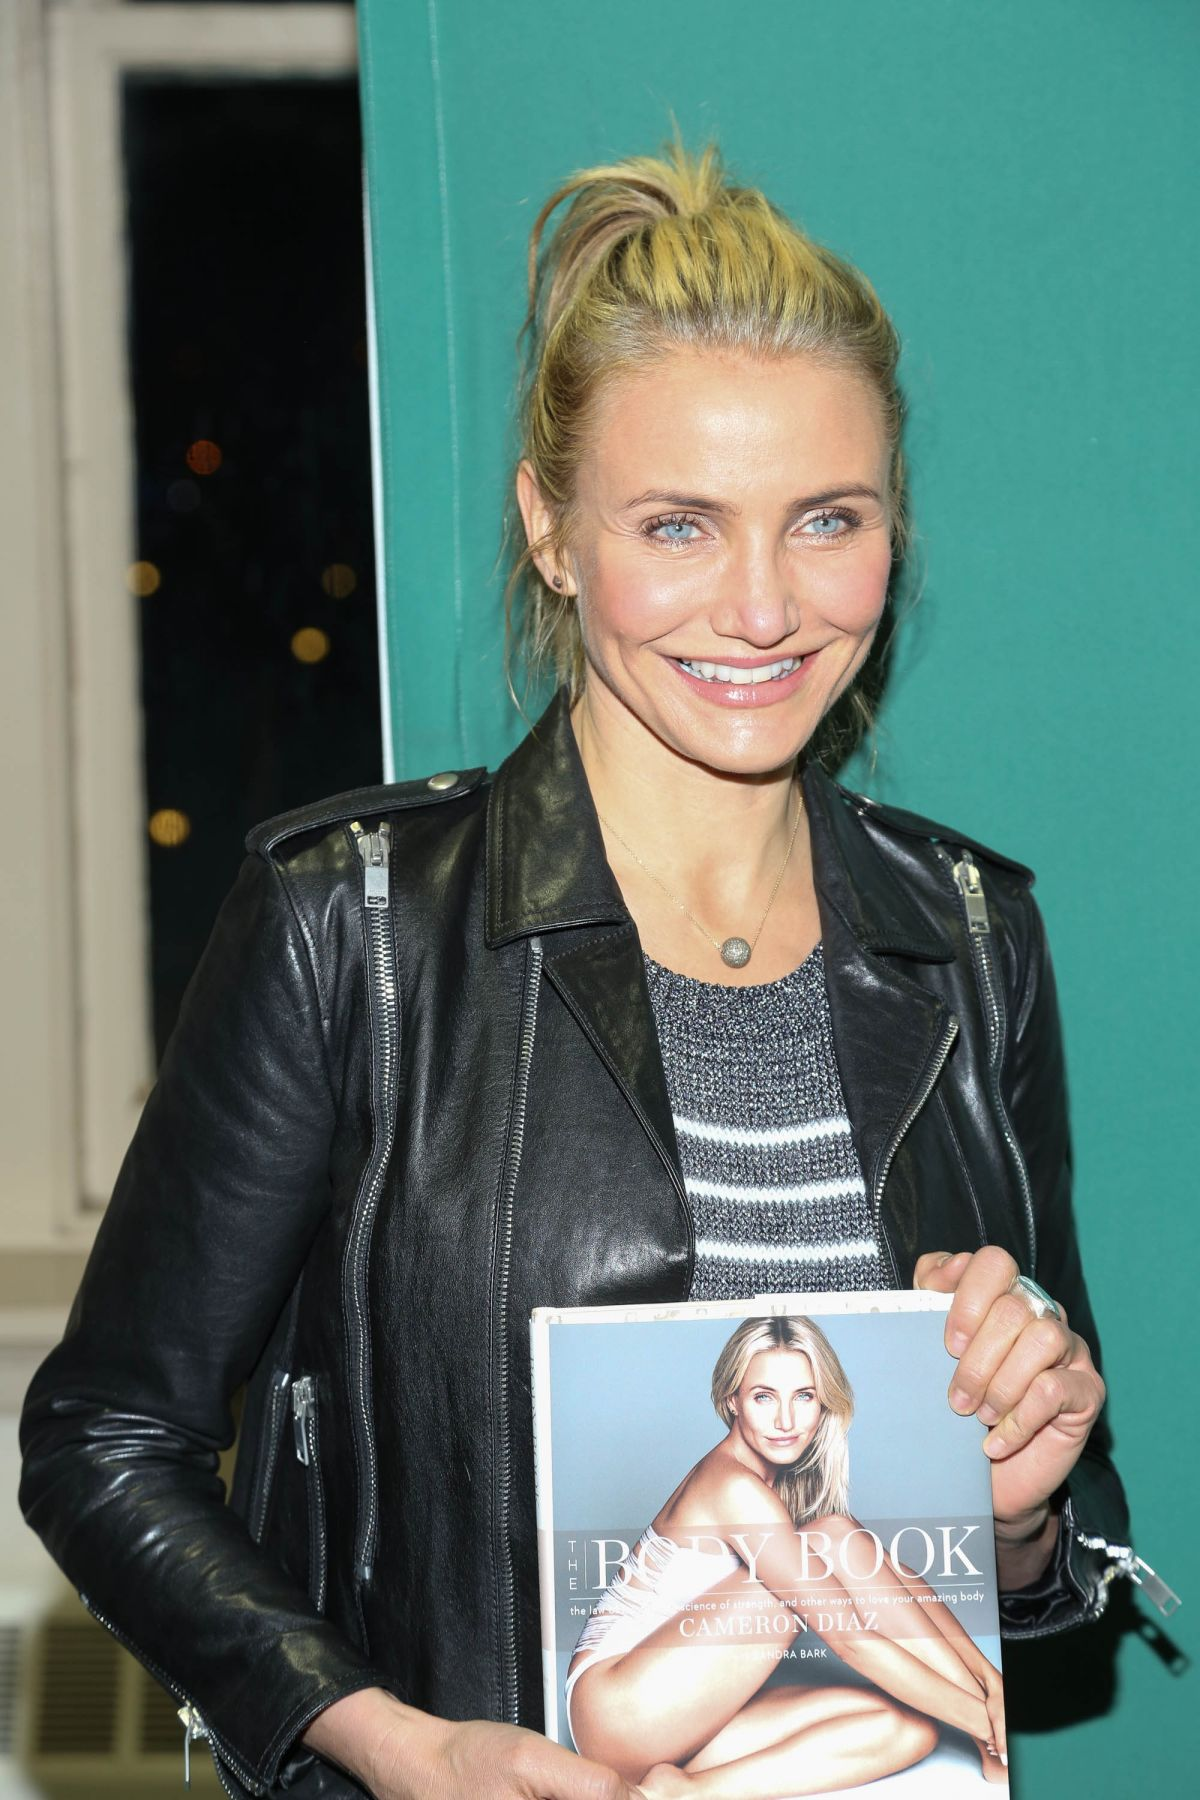 CAMERON DIAZ at The Body Book Signing in New york - HawtCelebs